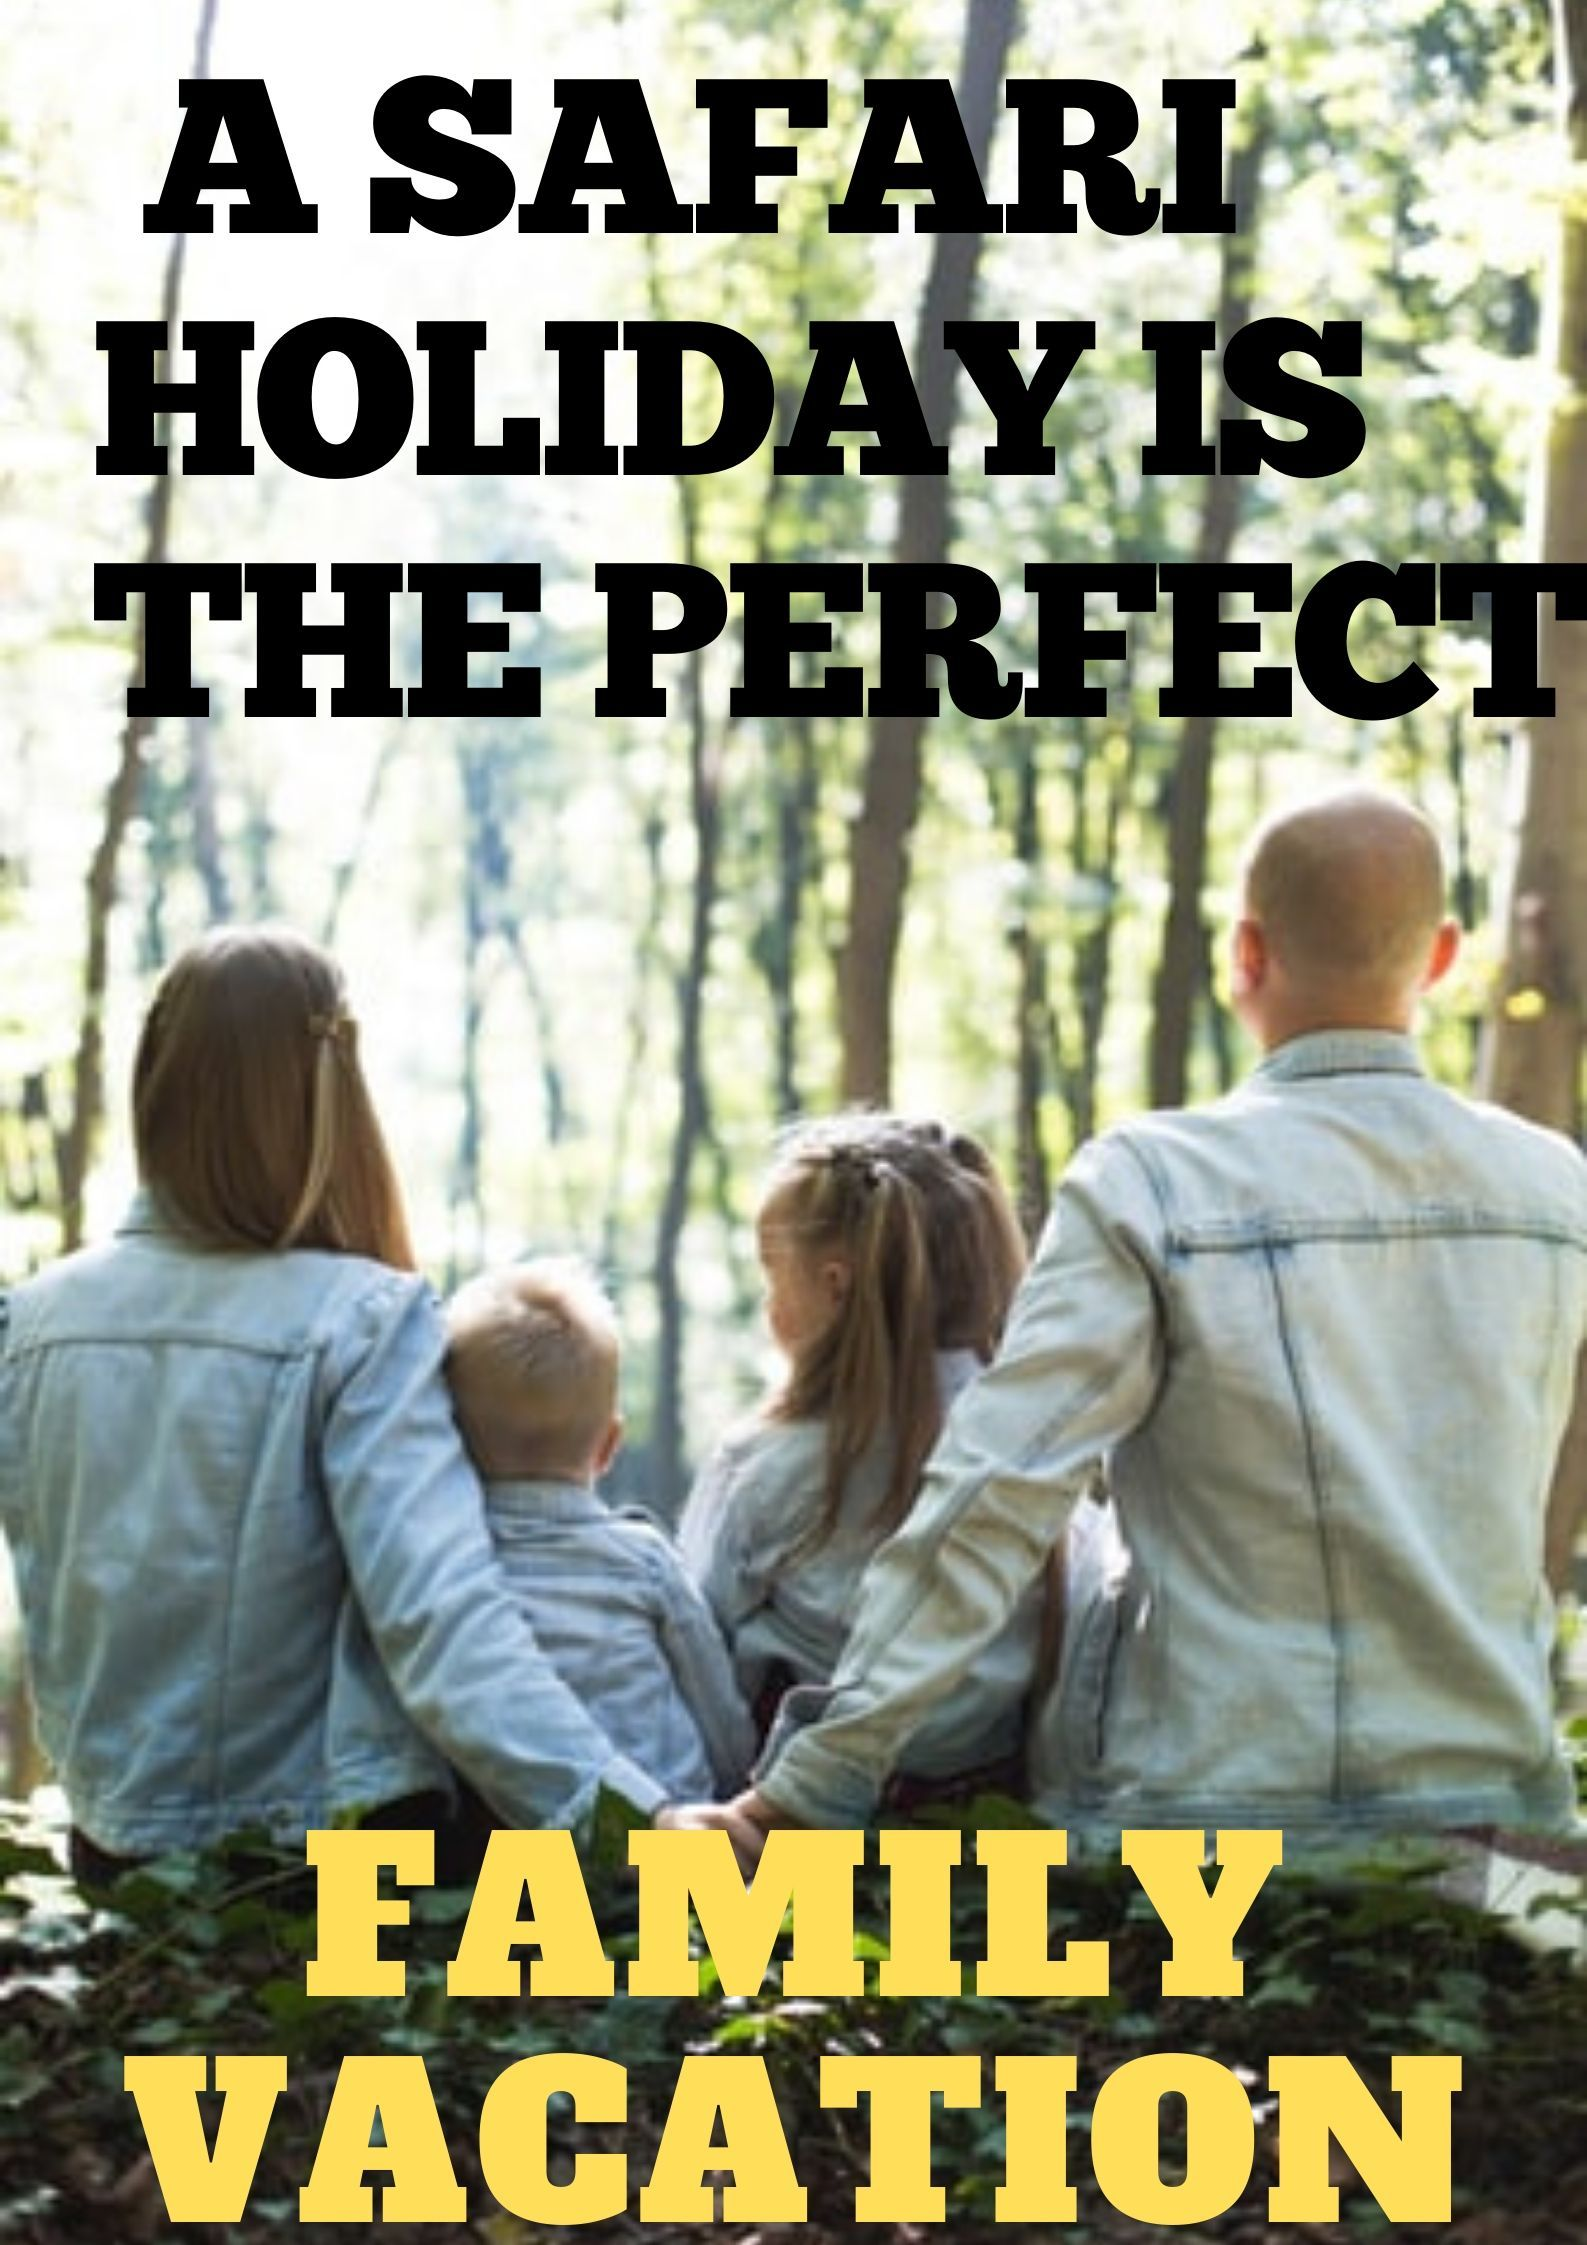 Why A Safari Holiday is the Perfect Family Vacation Engaging Peaceful and Adventurous  Safari Holiday is a safe bet for quality family time We tell you why we think you s...